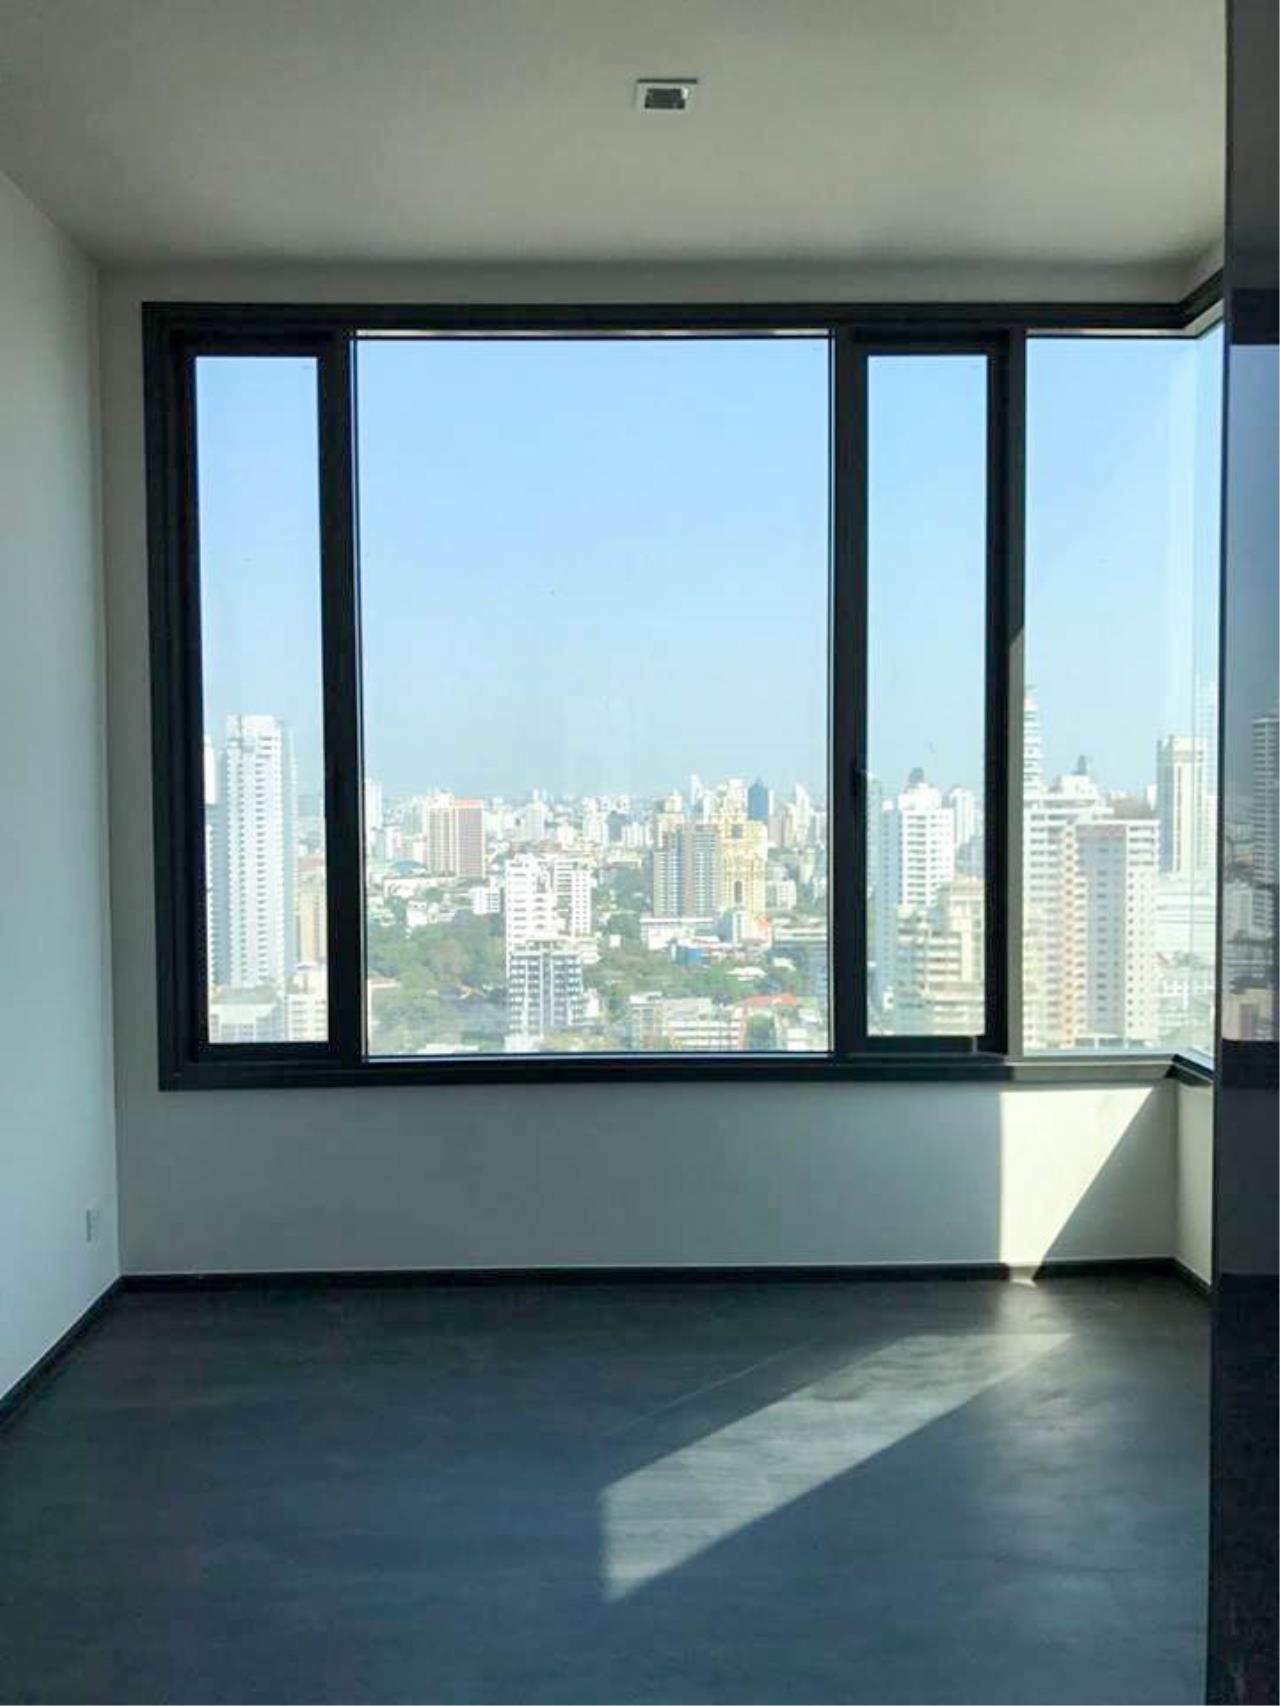 RE/MAX Properties Agency's 1 Bedroom 41 Sq.M. for sale at EDGE Sukhumvit 23 2